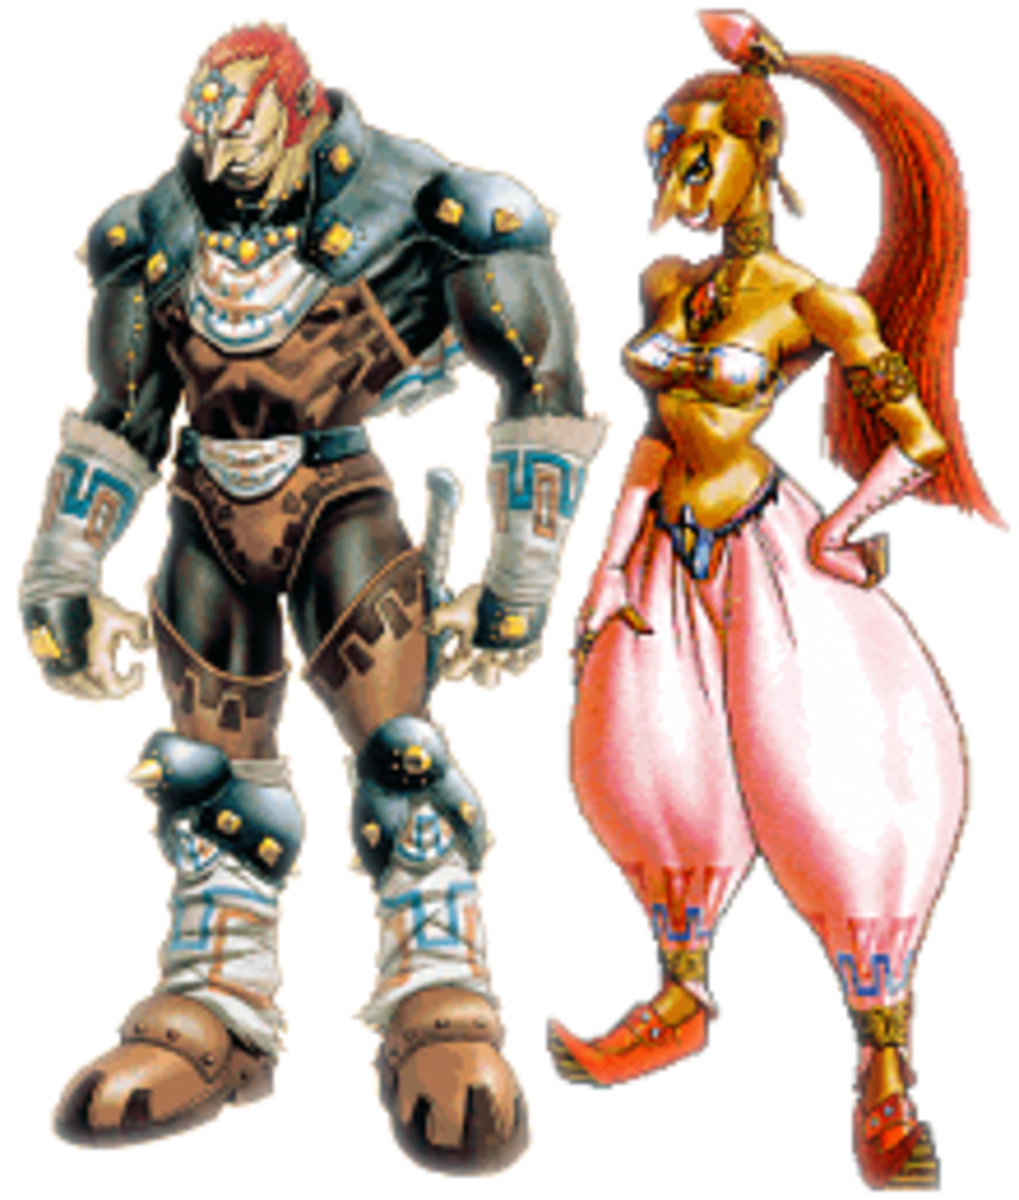 Ganondorf and Nabooru, the two most famous Gerudo.